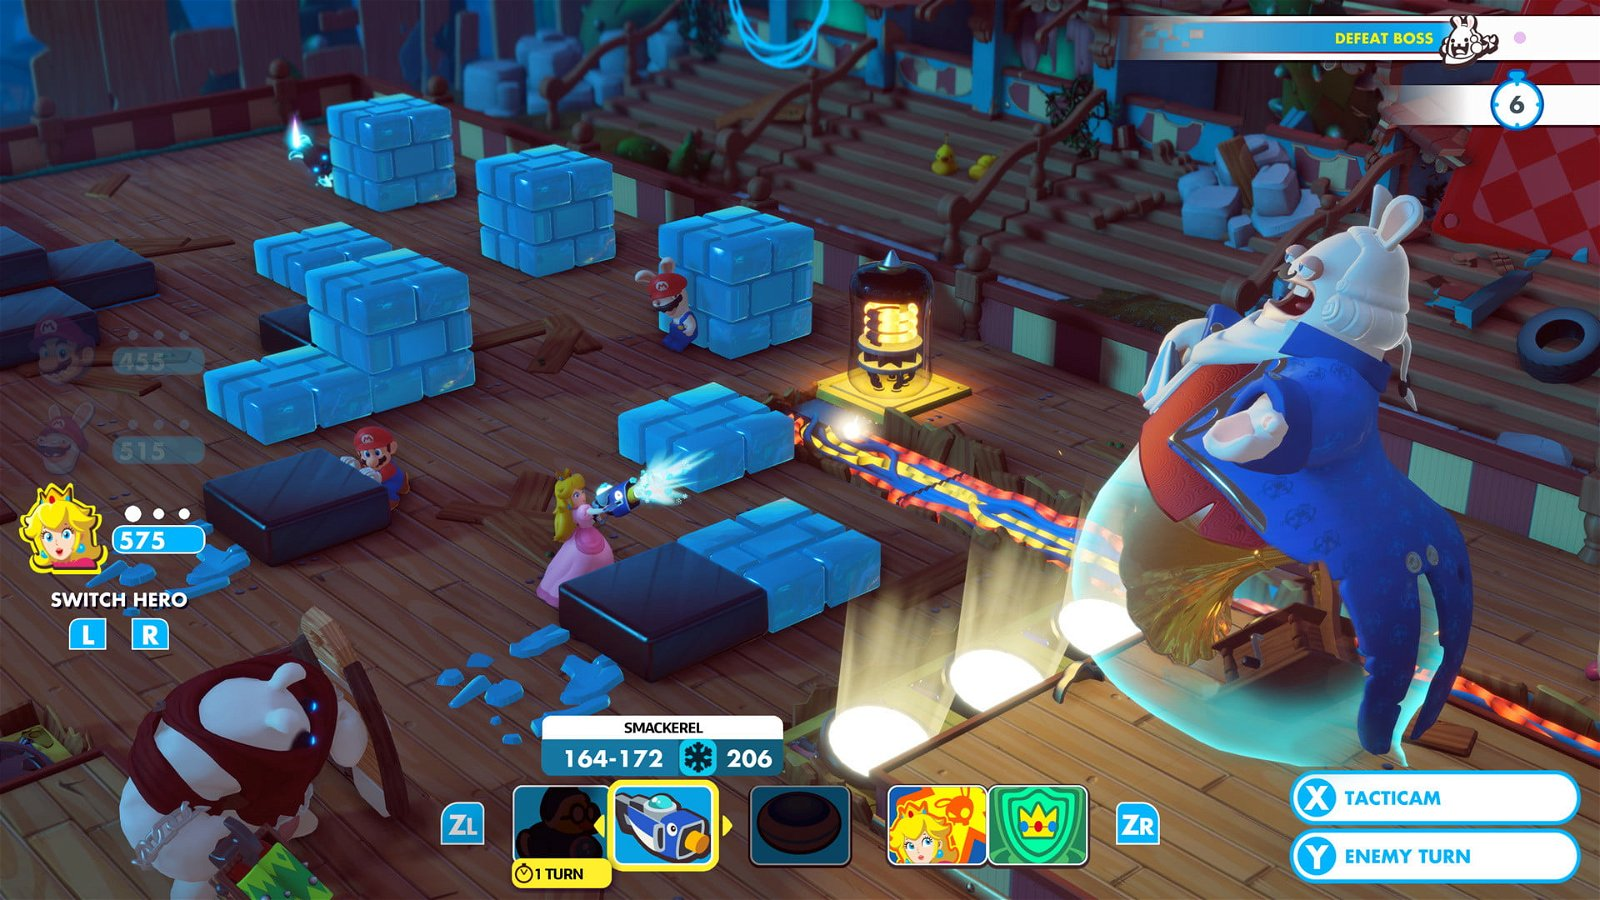 Mario + Rabbids: Kingdom Battle (Switch) Review: Engrossing Tactics & Gross-Out Humor 3